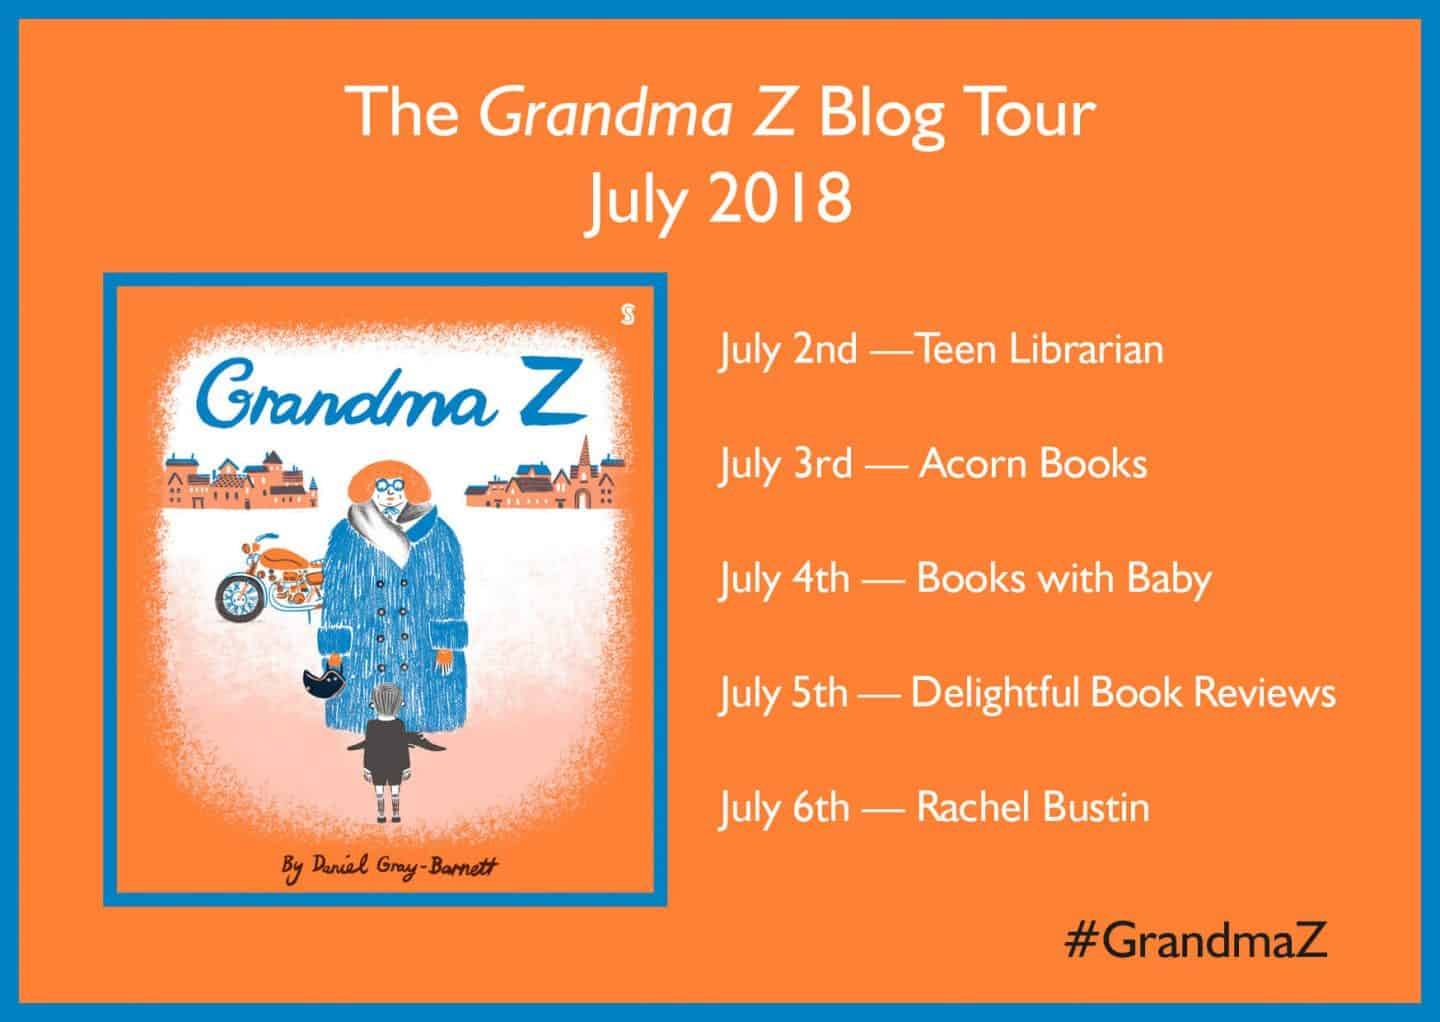 Grandma Z blog tour